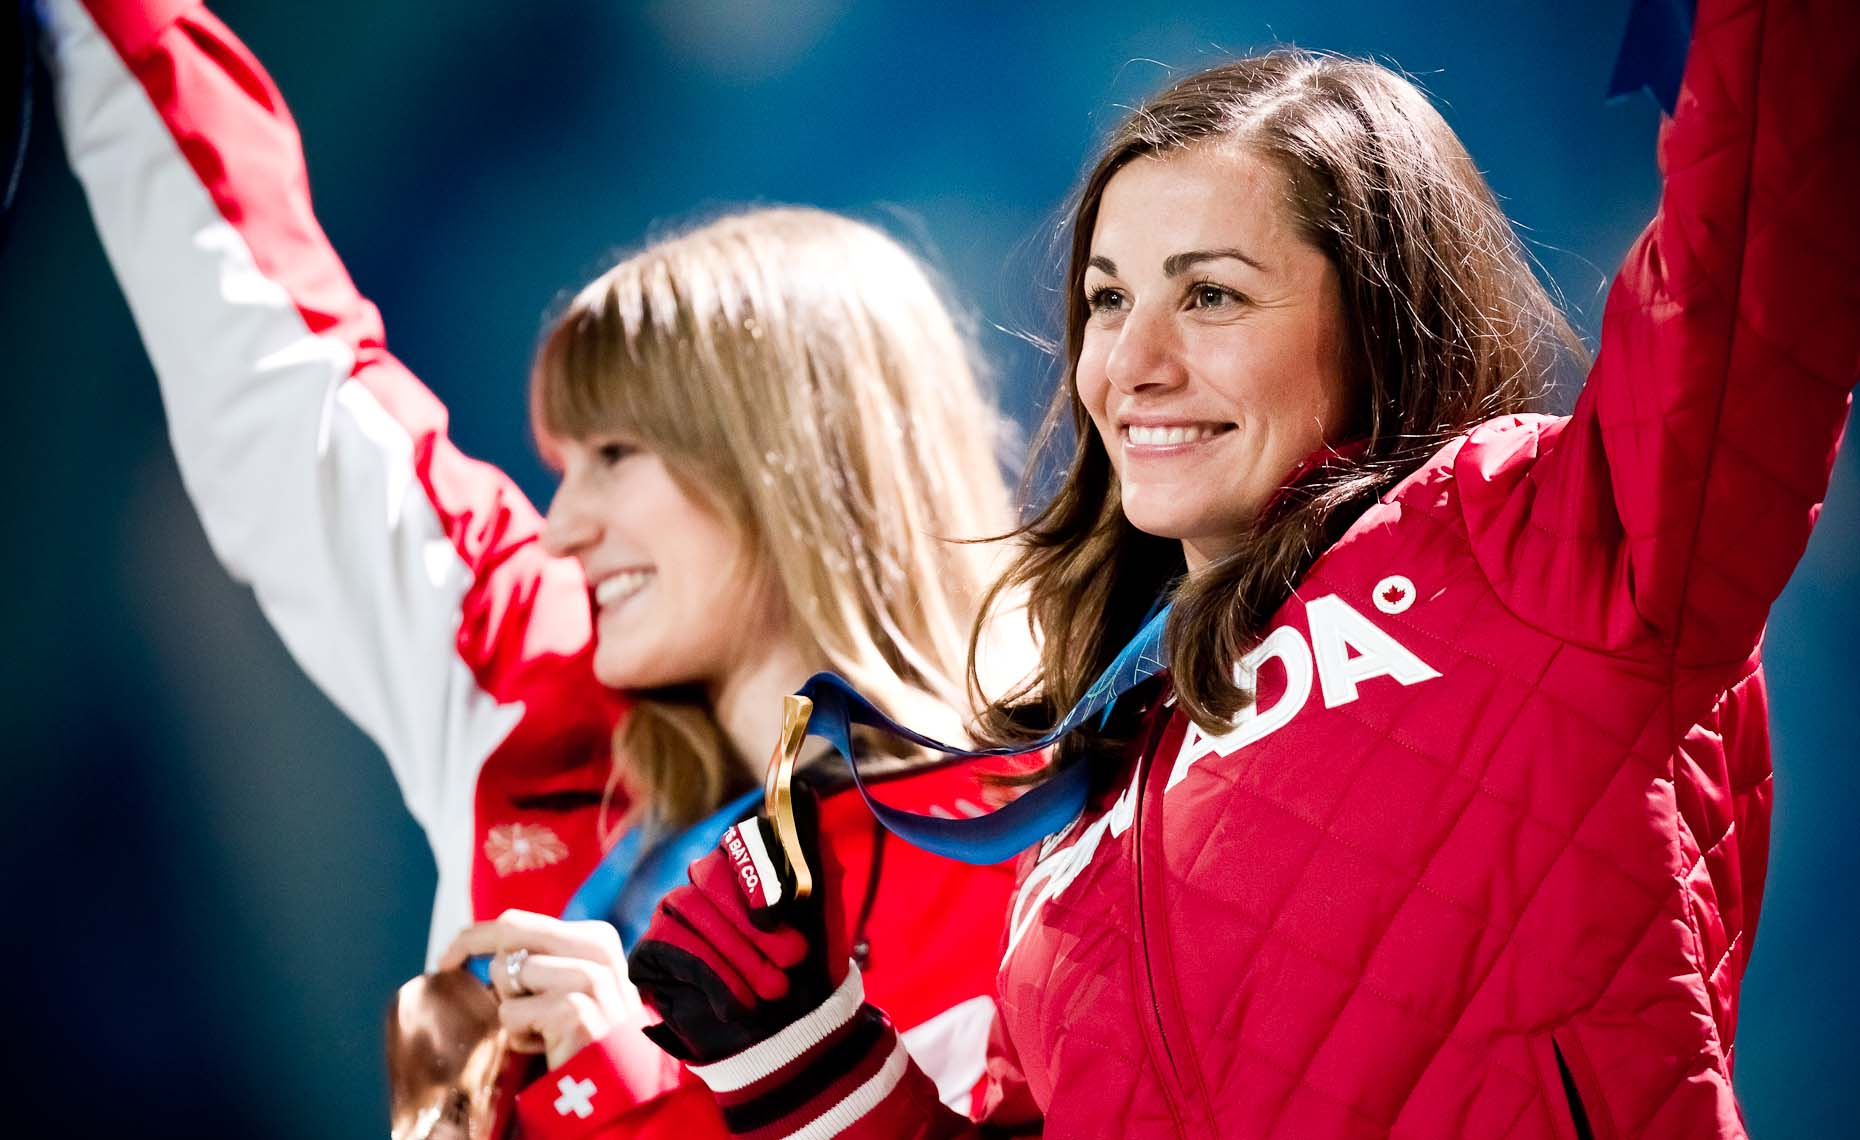 Maelle Ricker winning a gold medal at the 2010 winter olympics